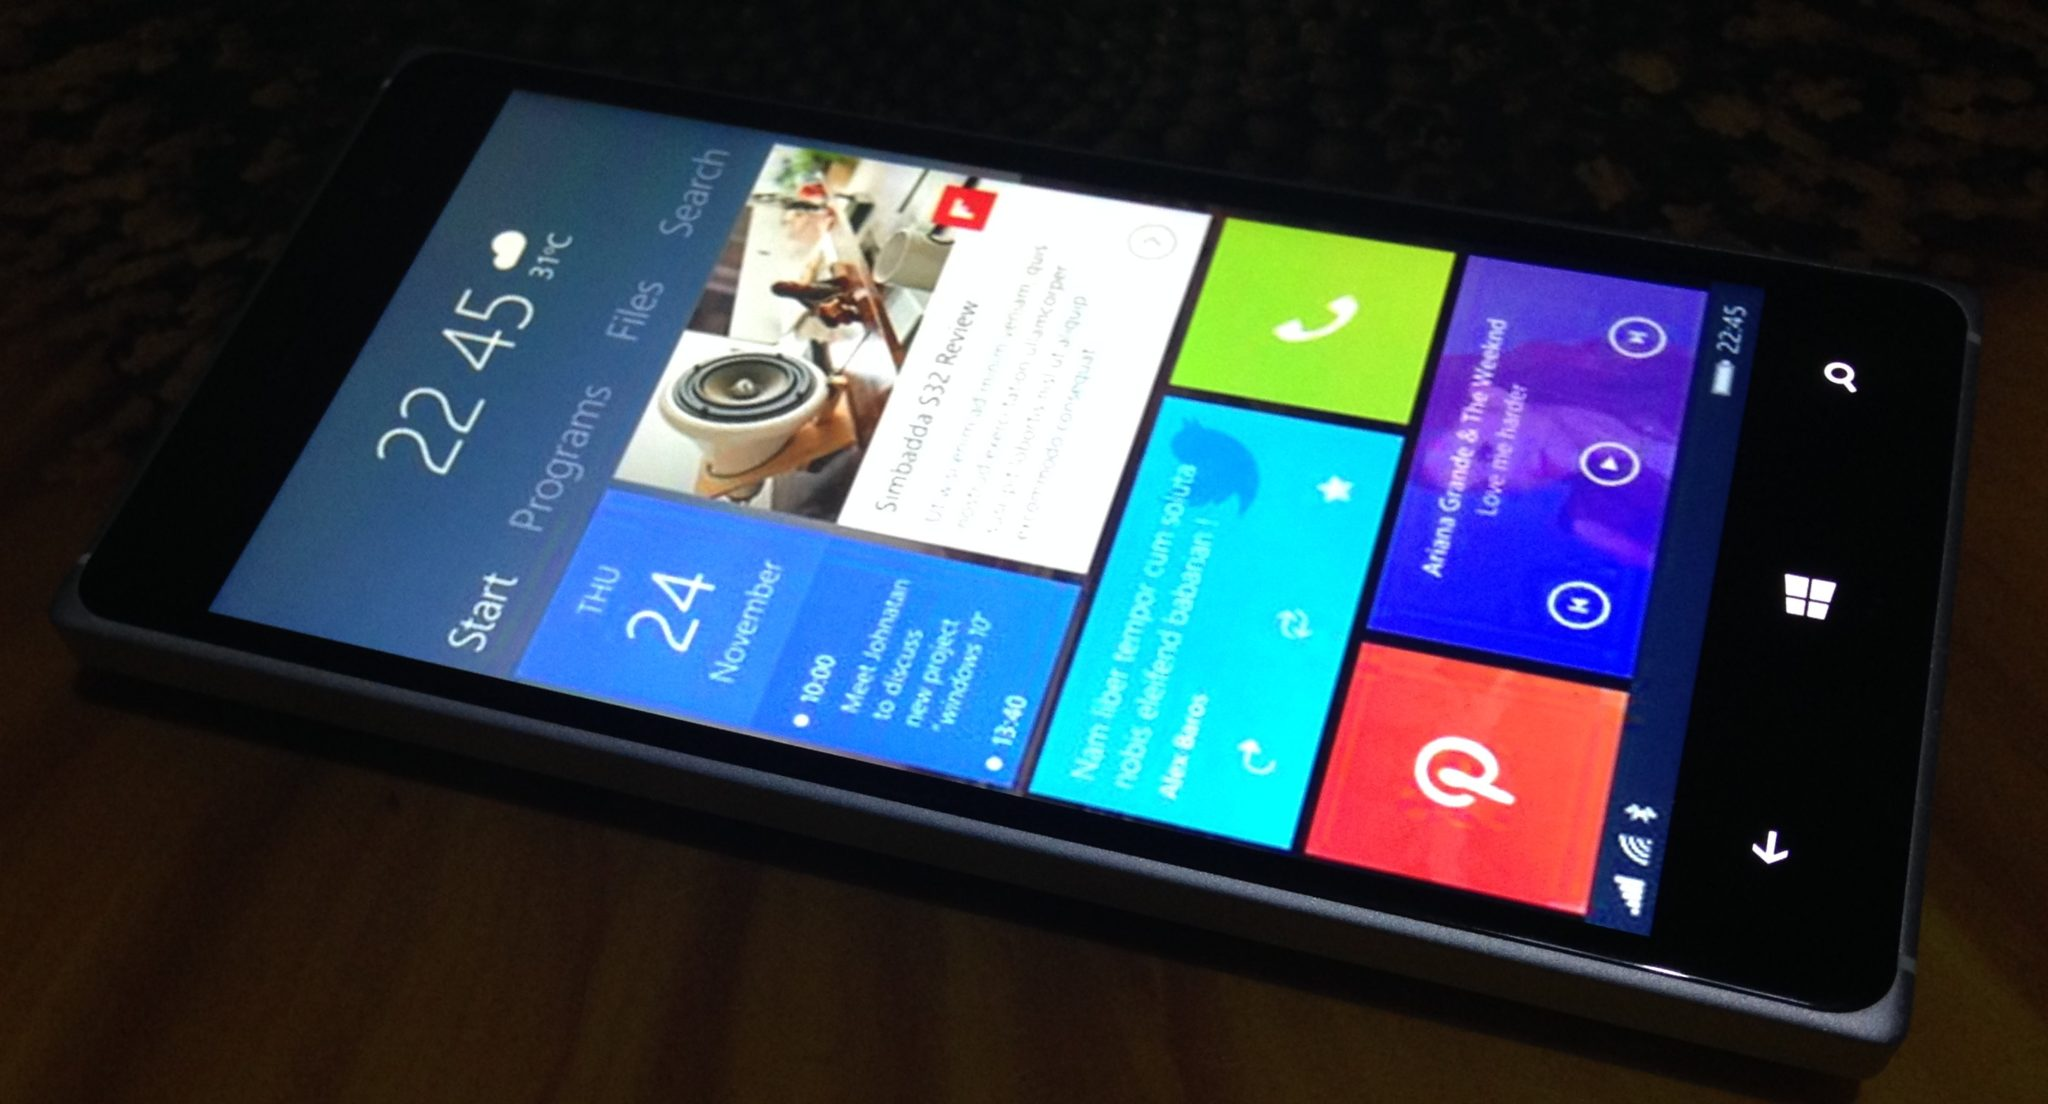 Microsoft Ends Push Notifications Support for Windows Phone 7.5 and 8.0